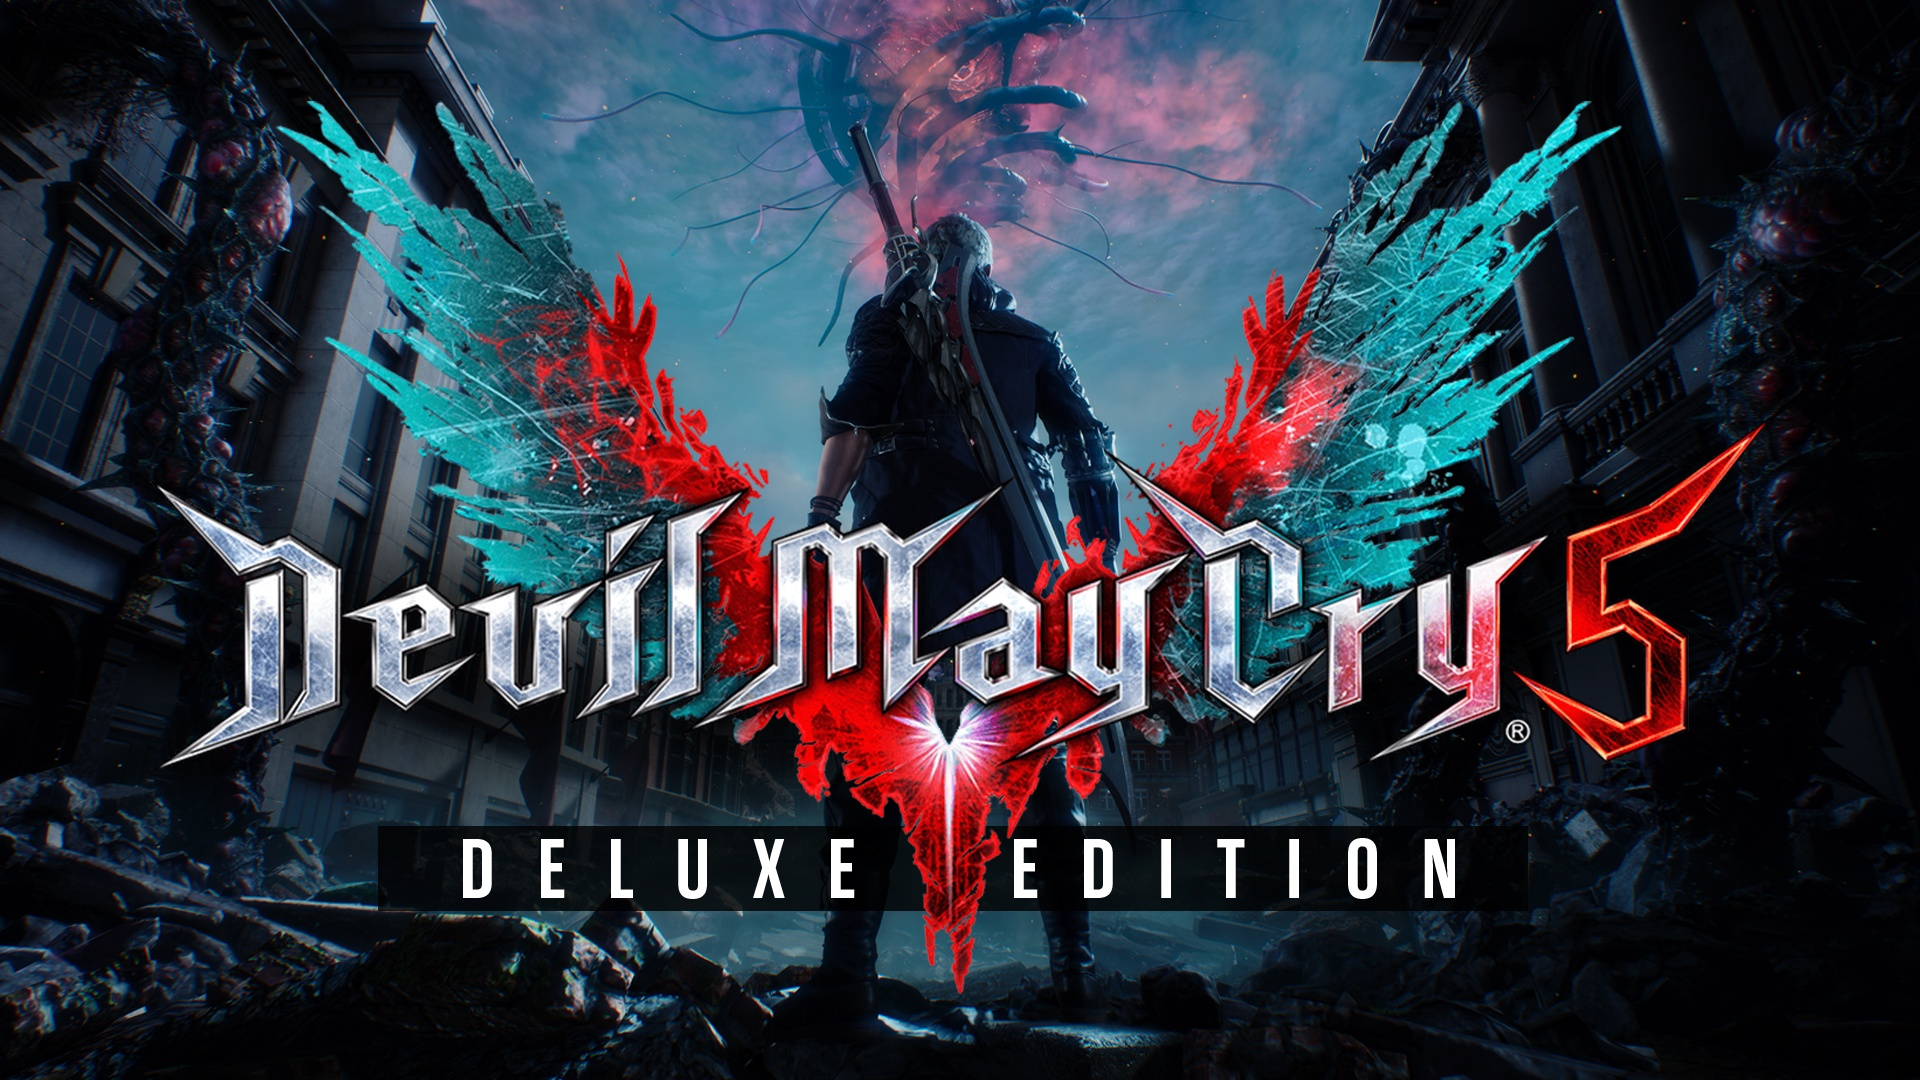 Devil May Cry 5: Deluxe Edition [PC Game Digital Download] | Lazada PH